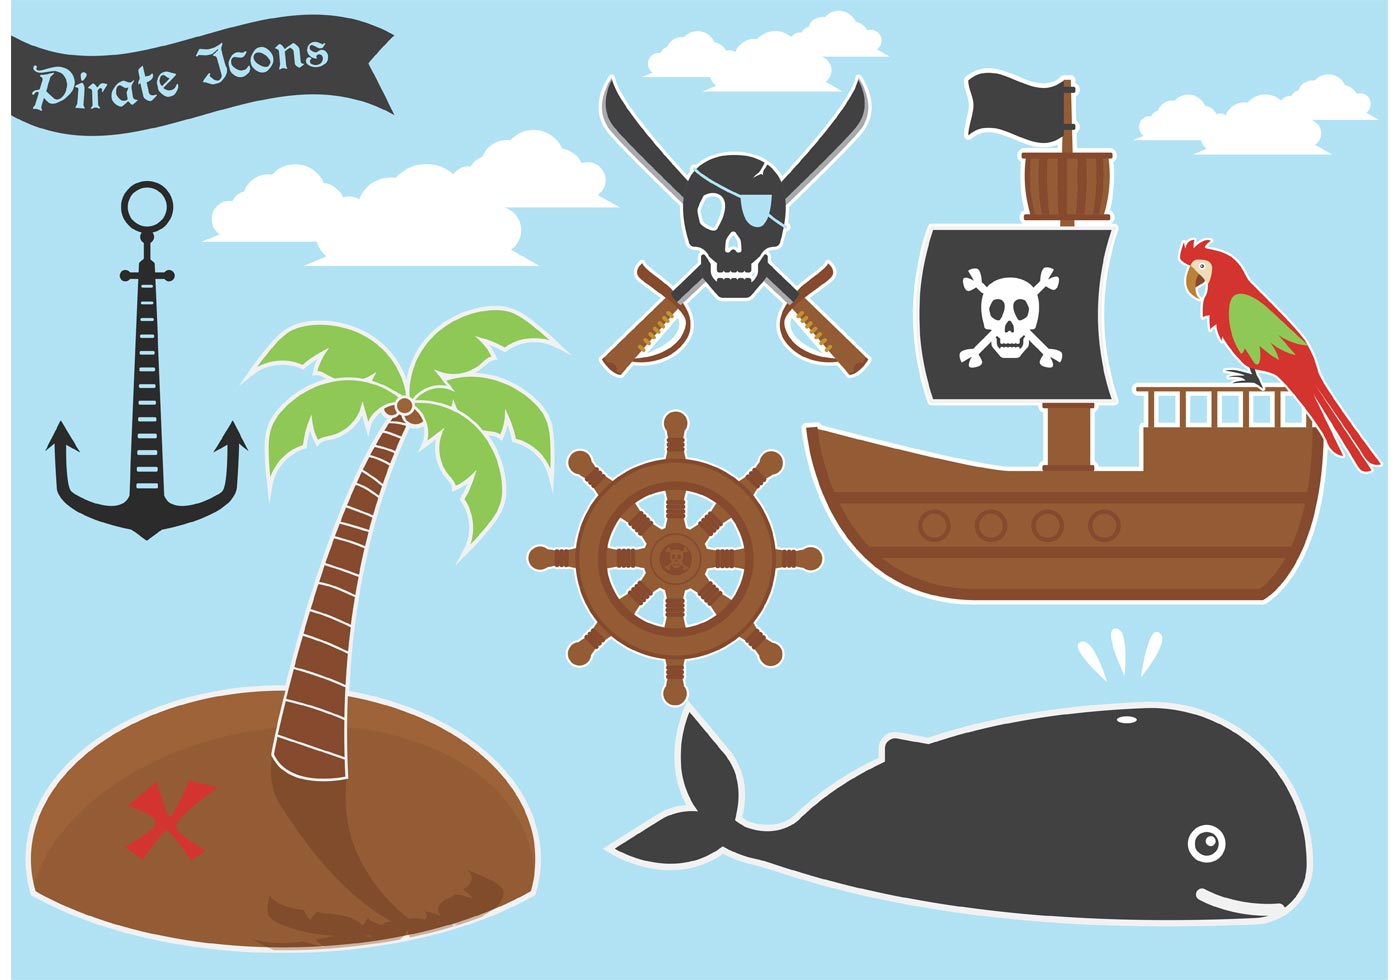 Pirate Vector Icons - Download Free Vectors, Clipart ...